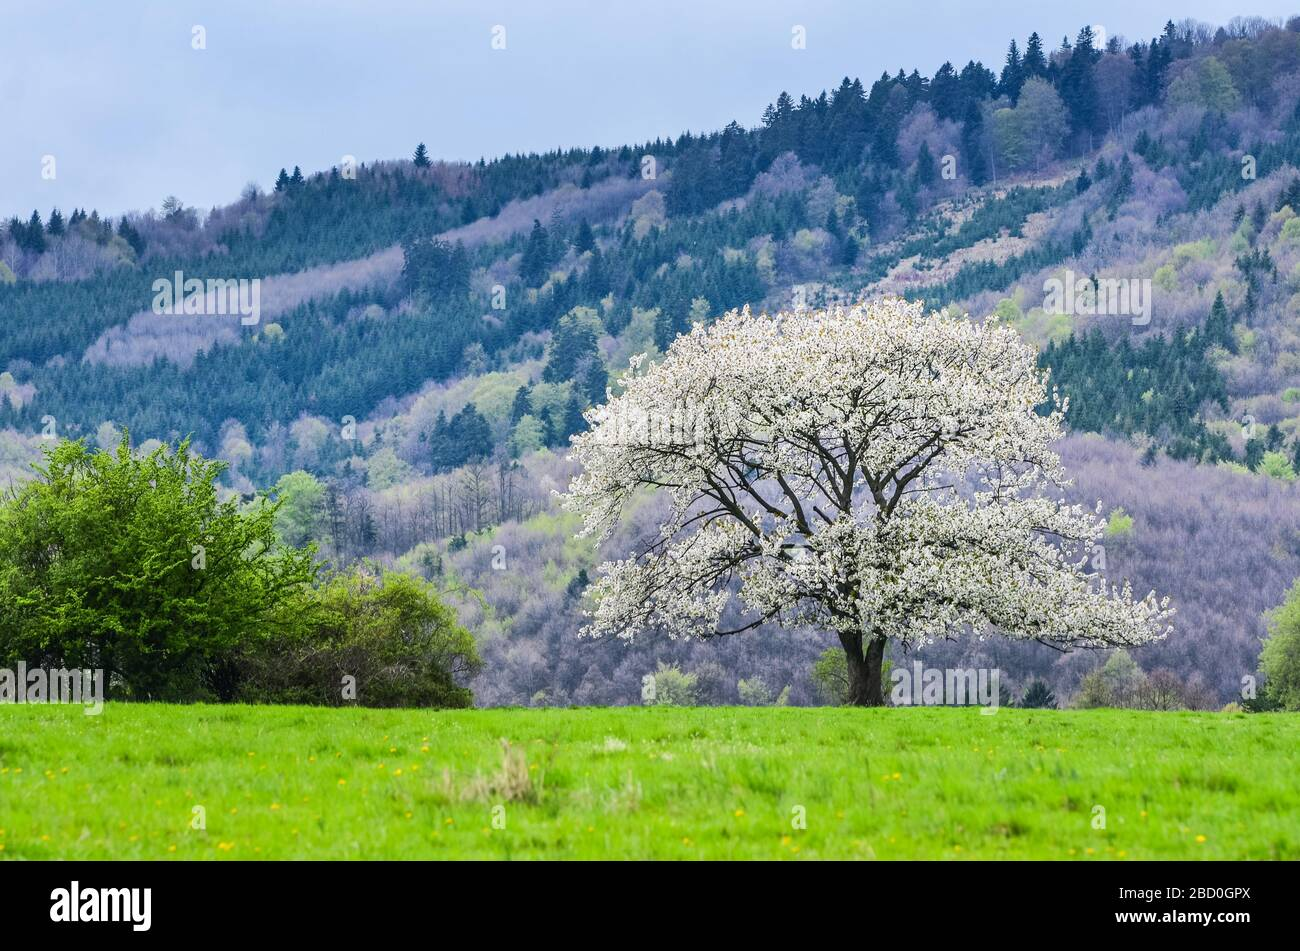 images Spring Scenery Wallpaper https www alamy com beautiful spring scenery white flowers cherry trees on nice meadow full of green grass blue sky and majesty forest in background wallpaper with spa image352211074 html